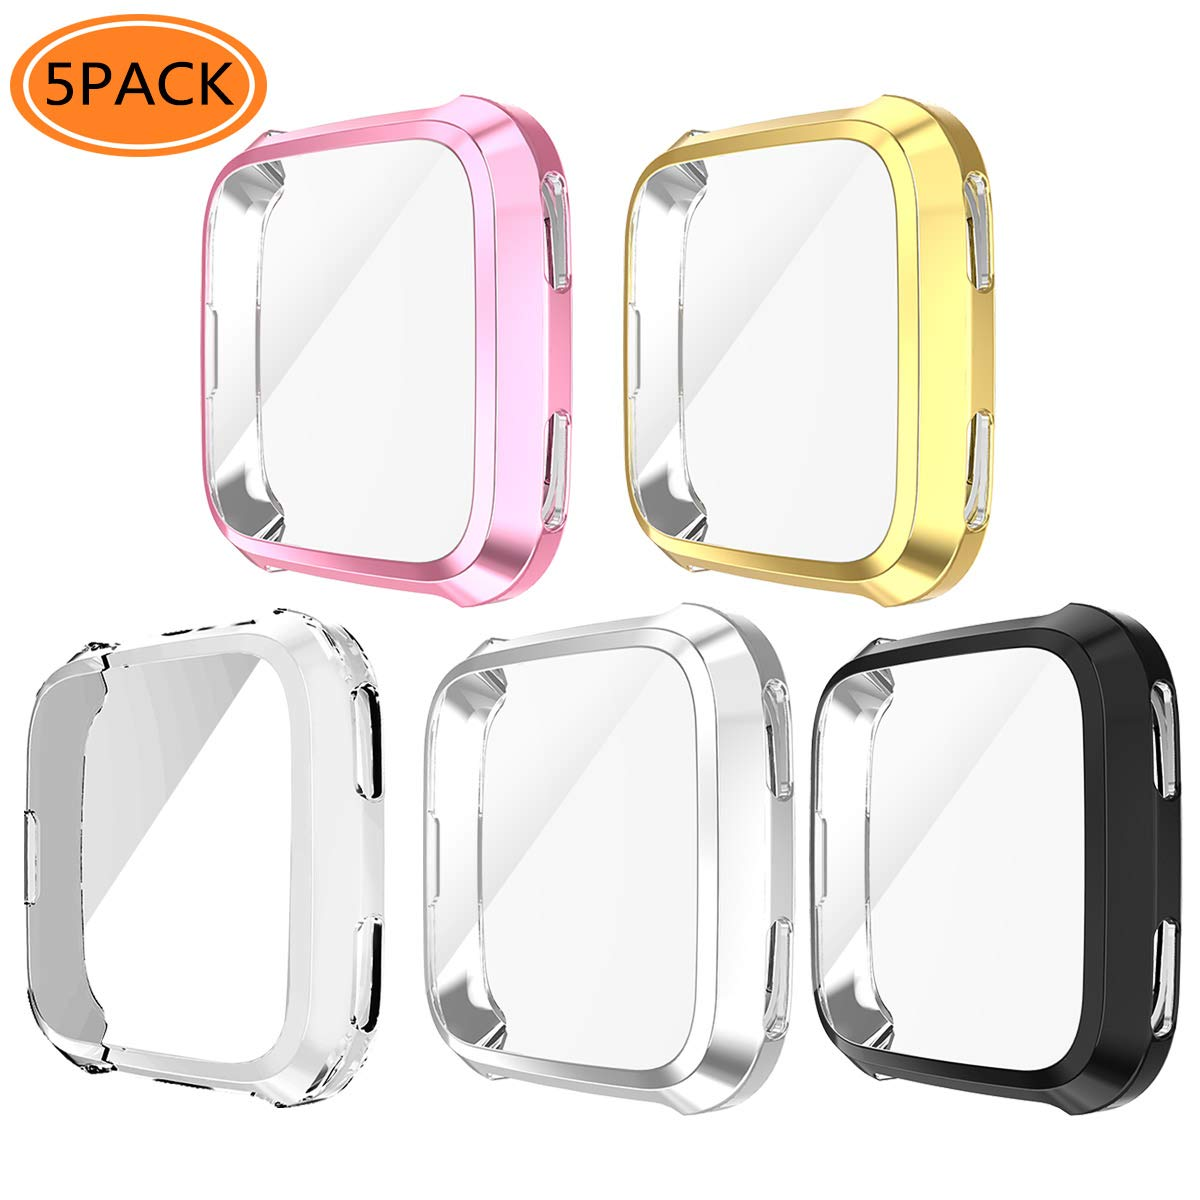 Case for Fitbit Versa, iHYQ Soft TPU Slim Fit Full Cover Screen Protector for Fitbit Versa Smart Watch (5 PACK) by iHYQ